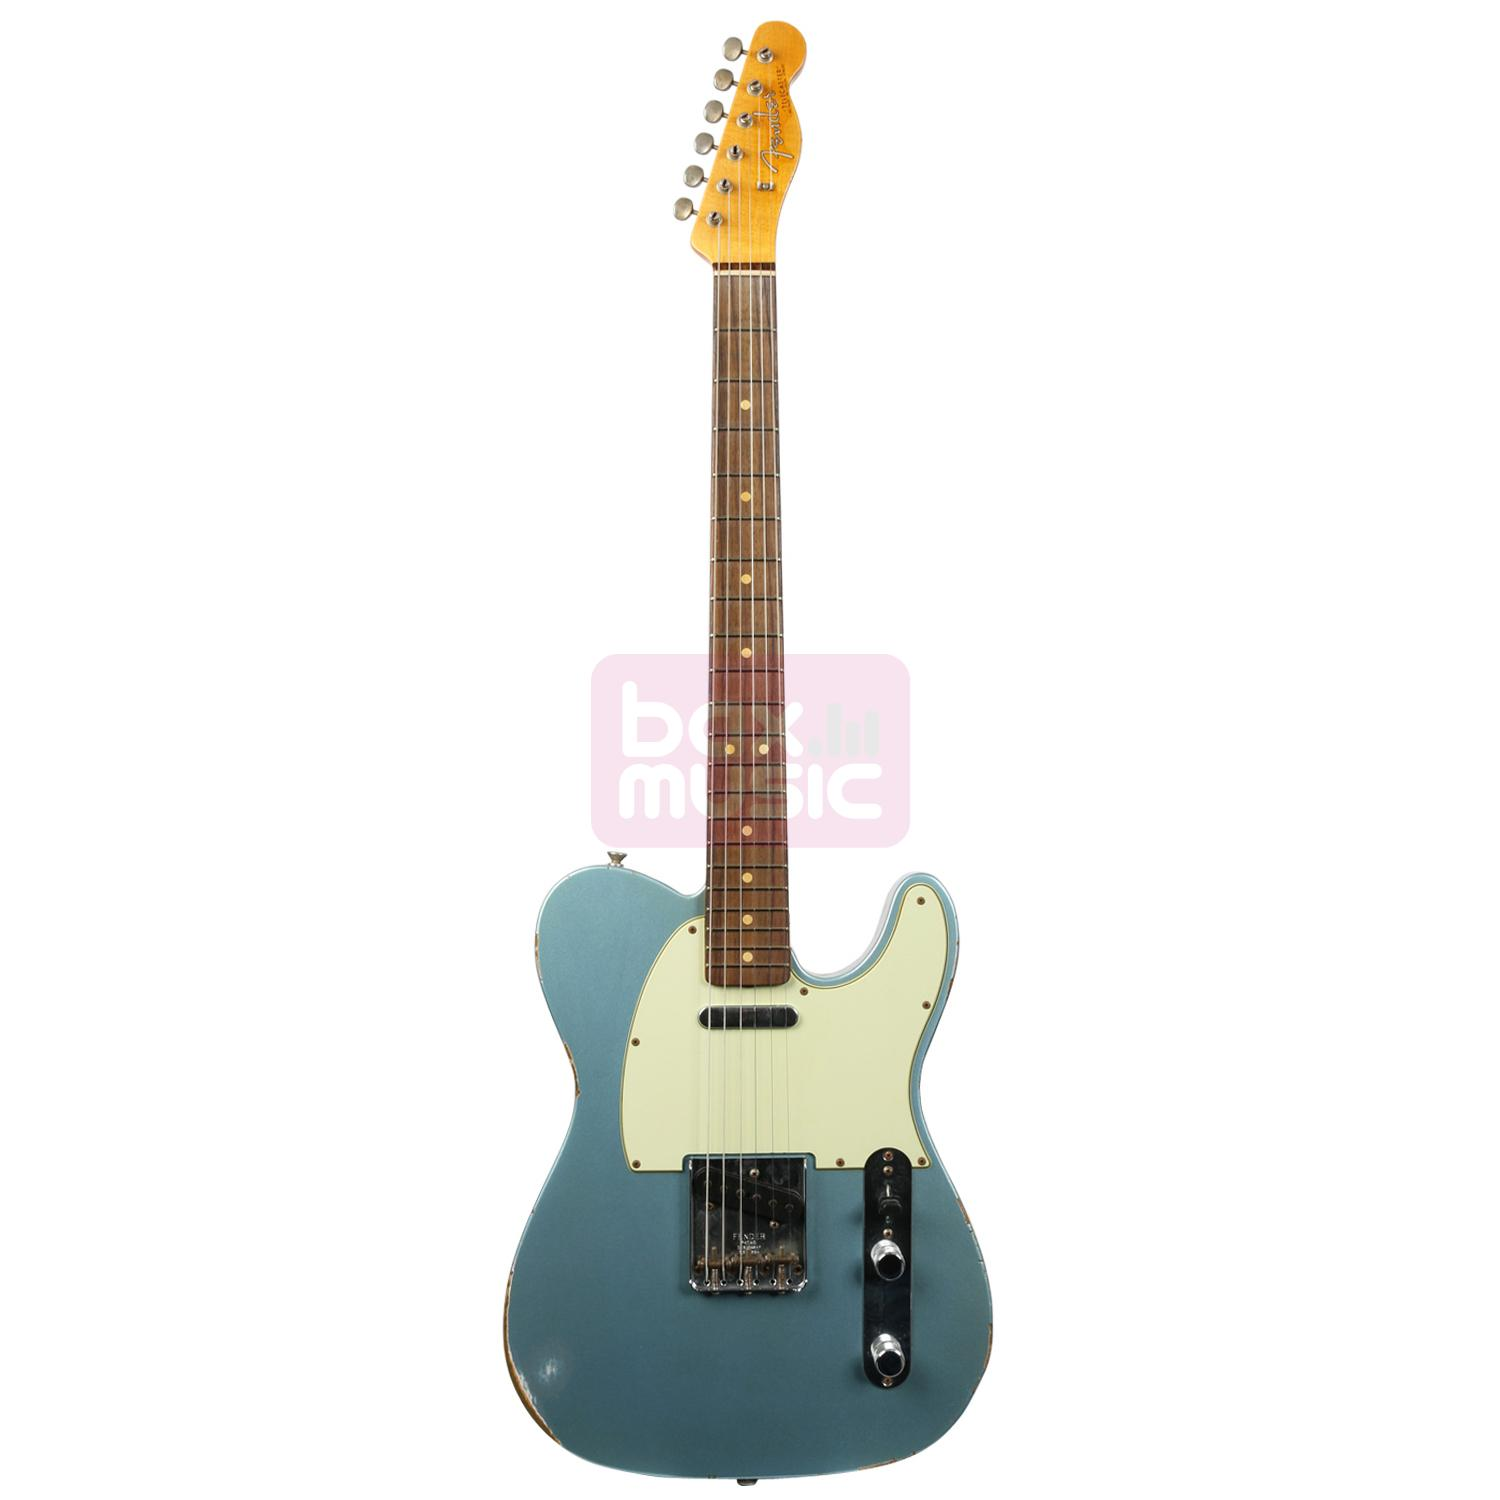 Fender Custom Shop 1963 Relic Telecaster Blue Ice Metallic RW